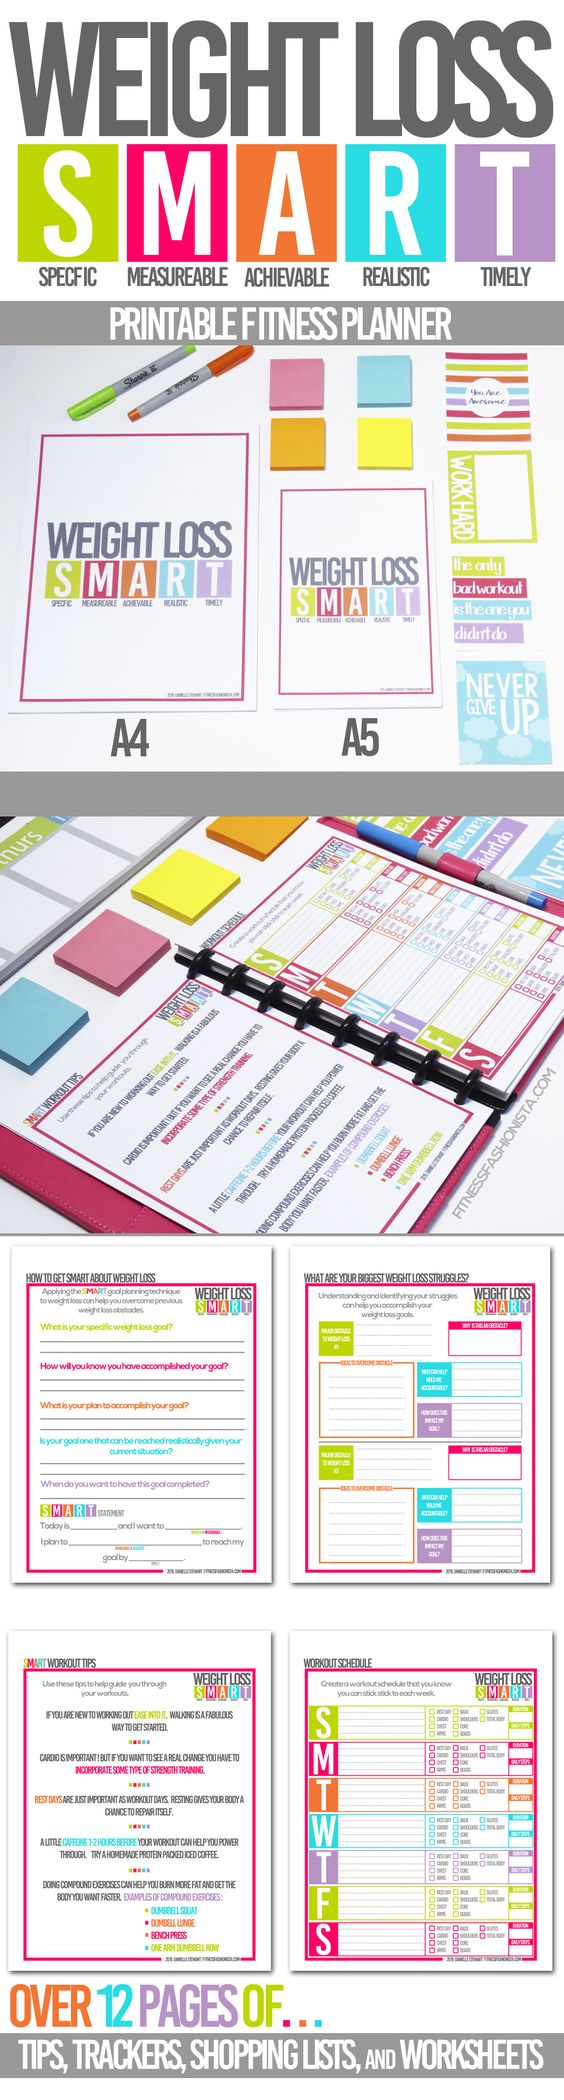 SMART Weight Loss printable Fitness Planner to help keep weight loss on track.  Track your meals, workouts, measurements plus pages of tips to help you lose weight the smart way.  Avaliable in A4 and A5 size fits most planners and binder systems.